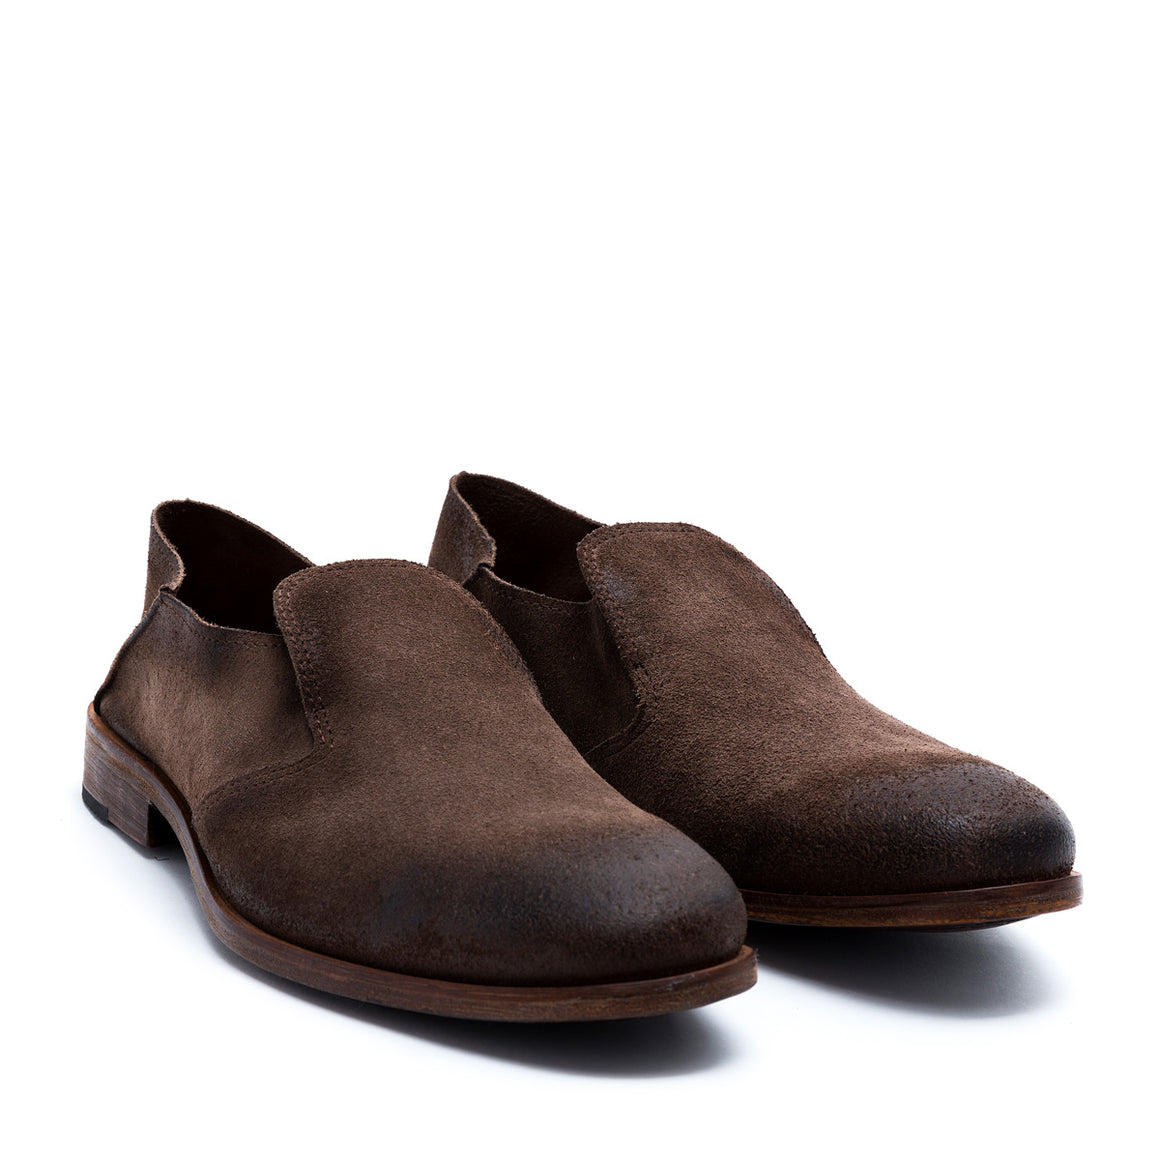 Saxon - suede leather shoes